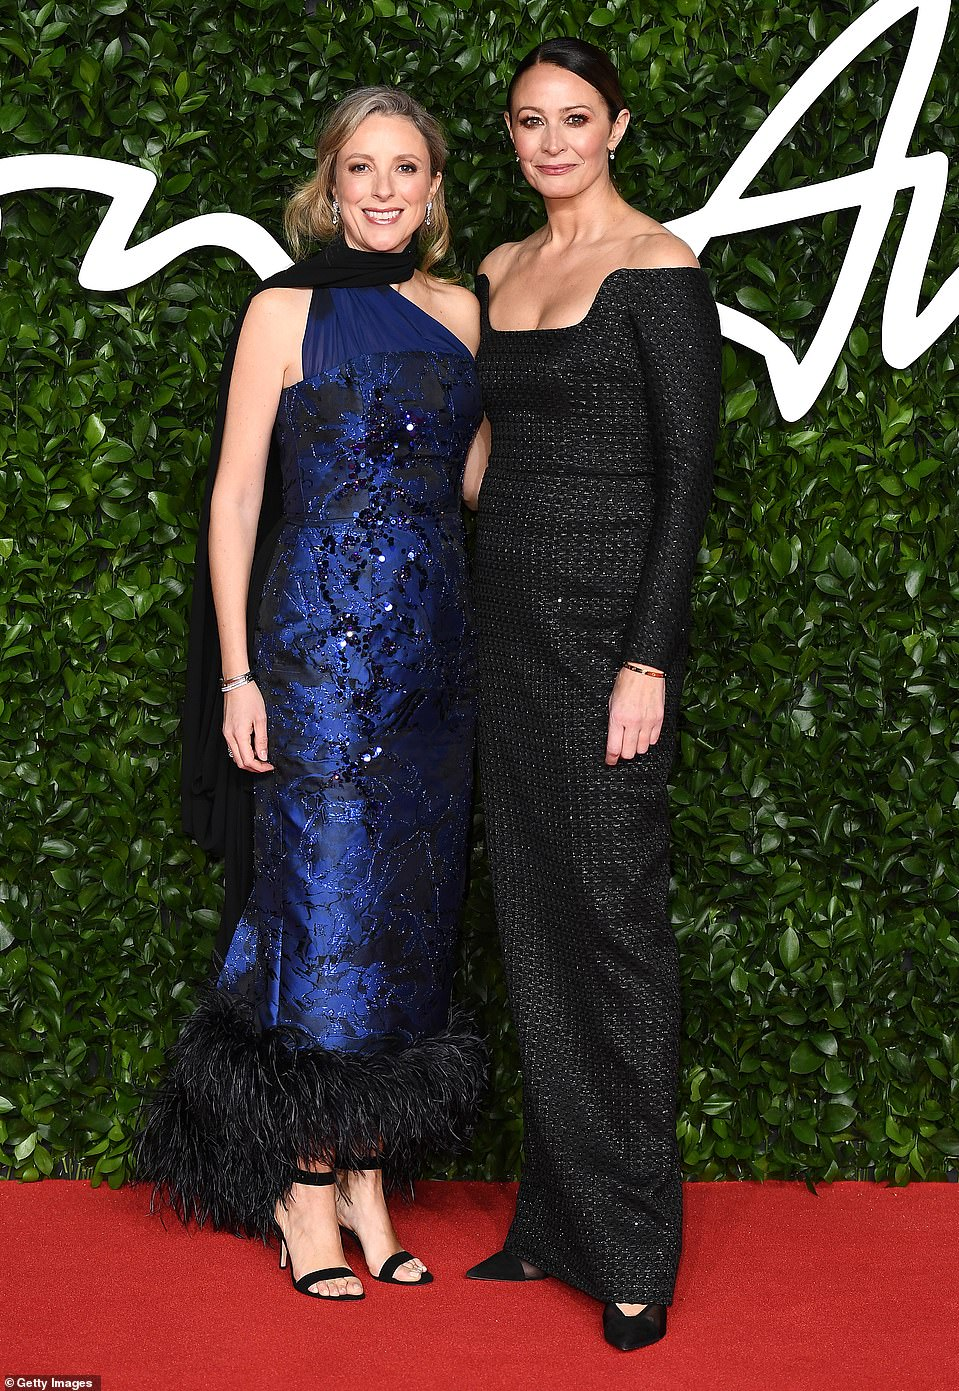 Camera, action: Farfetch Chief Strategy Officer Stephanie Phair (L) and Chief Executive of the British Fashion Council Caroline Rush, who wore Emilia Wickstead, walked the carpet together